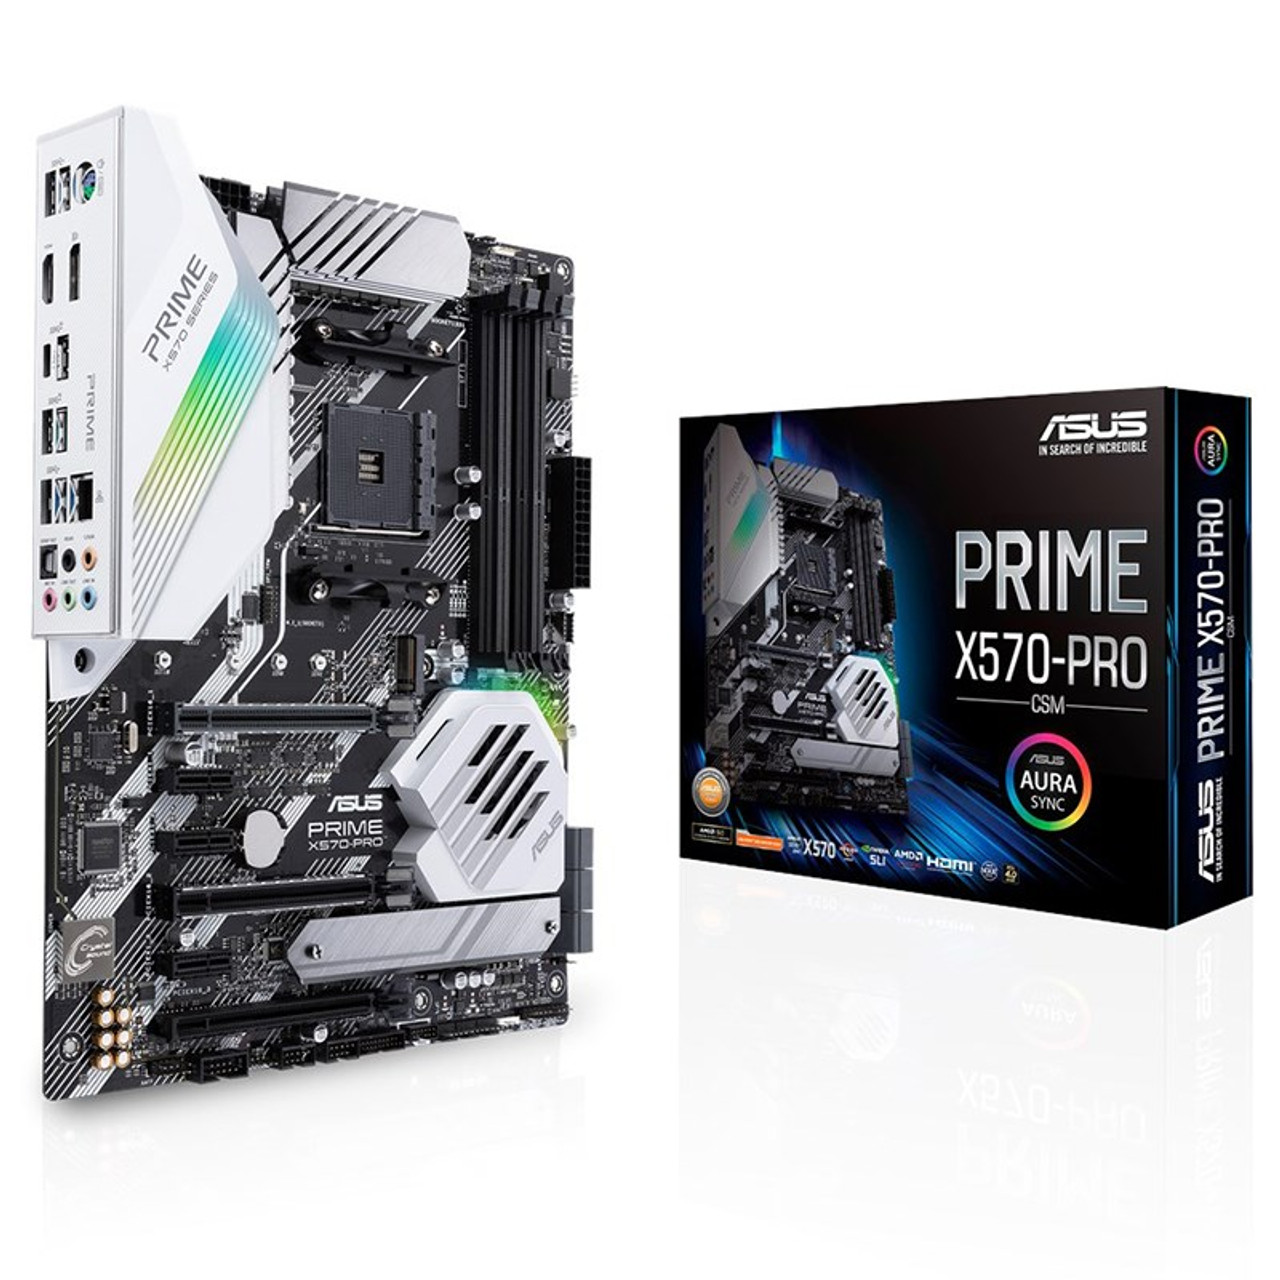 Image for Asus PRIME X570-PRO/CSM AM4 ATX Motherboard CX Computer Superstore